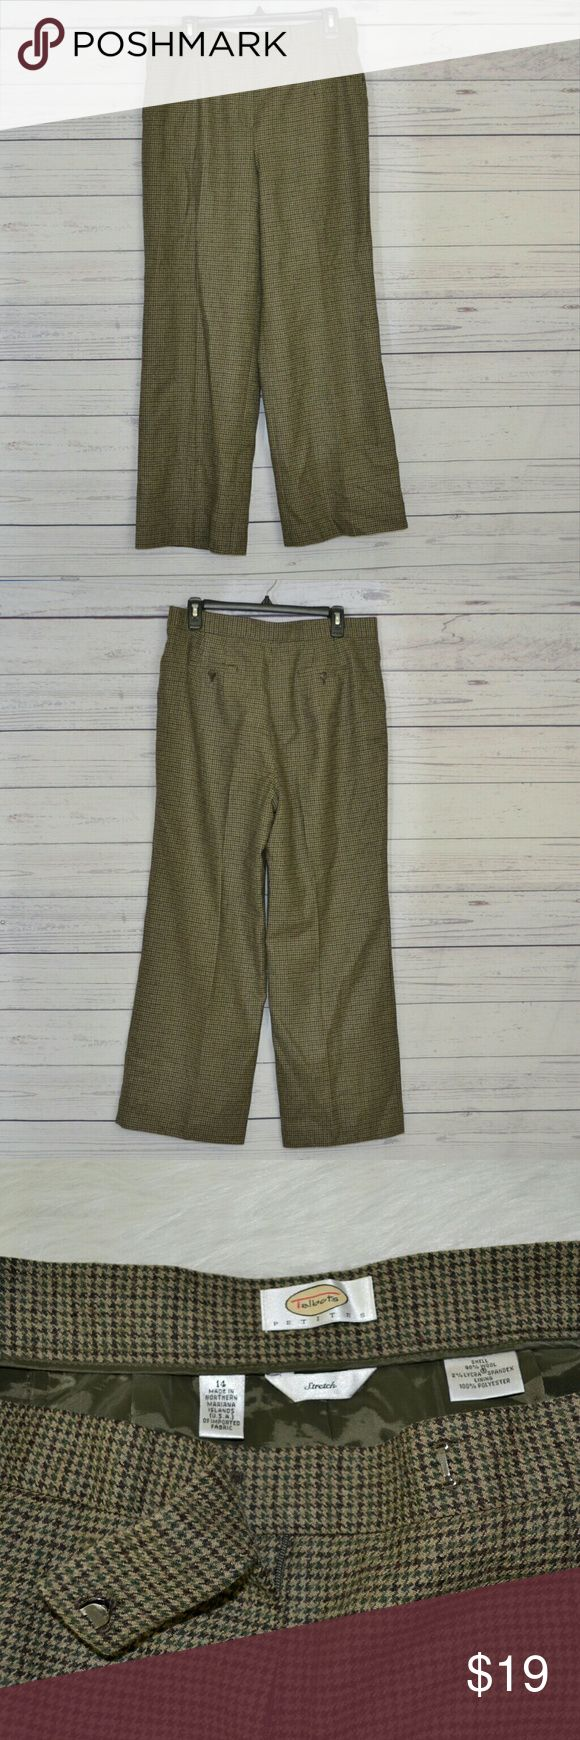 "Talbot houndstooth Olive Brown Trouser Size 14 Talbots Petites Womens Trousers Size 14 Stretch Houndstooth Pants Brown Dk Green   Brand: Talbots  Condition: Great condition.  Color: Brown  Materials: 98% Wool, 2% Spandex & Lining 100% Polyester   Origin: Made in Northern Mariana Isaland (USA) of imported Fabric  Size: 14P  Features: Houndstooth Patter, Pockets and fully lined.   Measurements:  Waist (laid flat & doubled): 34.5""   Inseam: 29""  Rise: 13"" Talbots Pants Trousers"